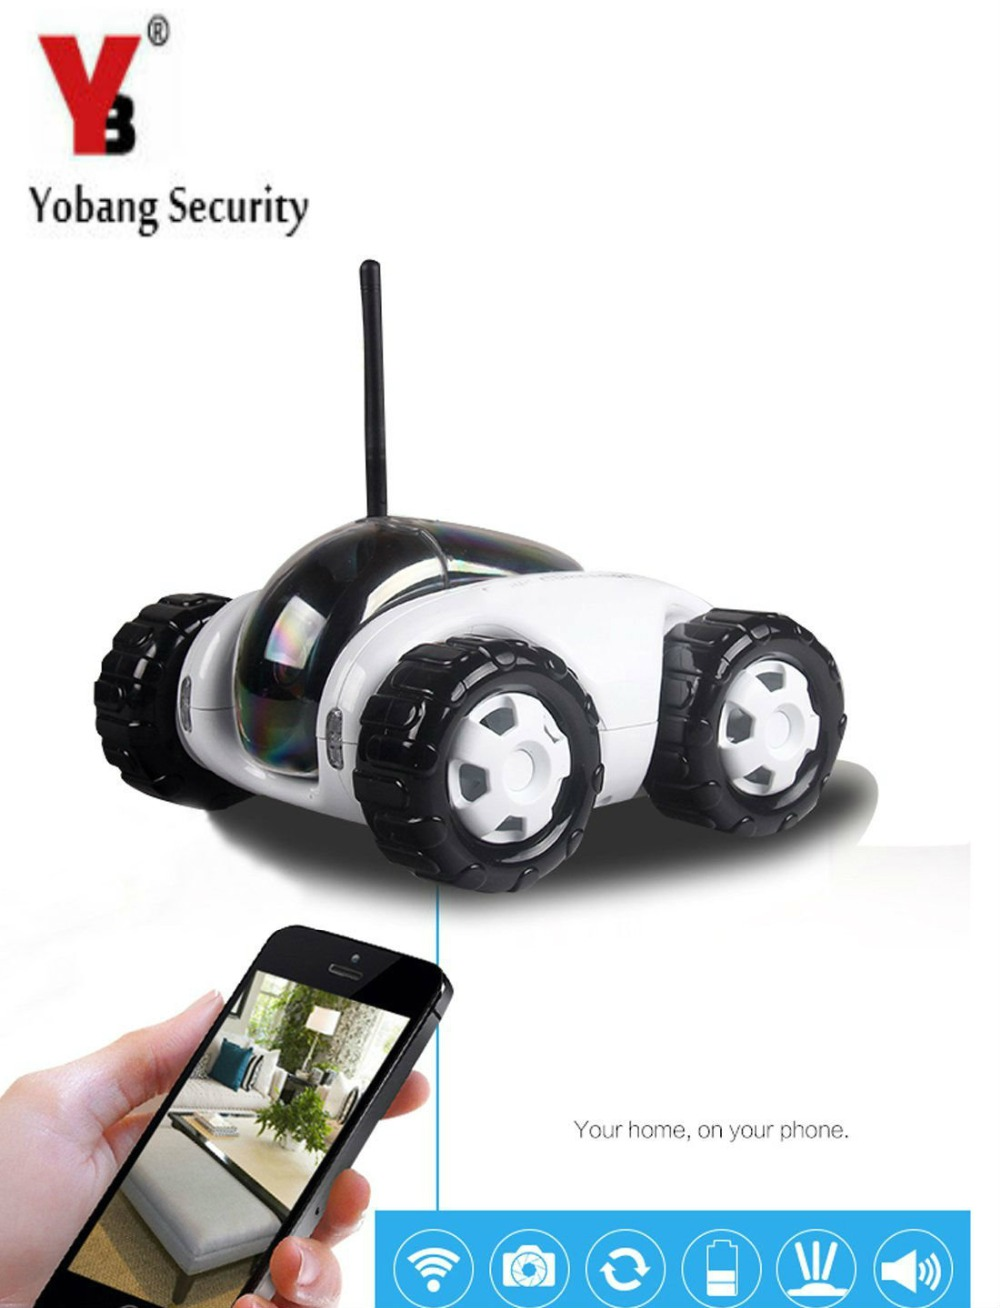 Yobang Security wireless charger WiFi remote tank car camera video Night Vision mobile 3MP IP Camera Smart Phone remote control  wireless charger wifi remote control car with fpv camera infrared night vision camera video toy car tanks real time video call